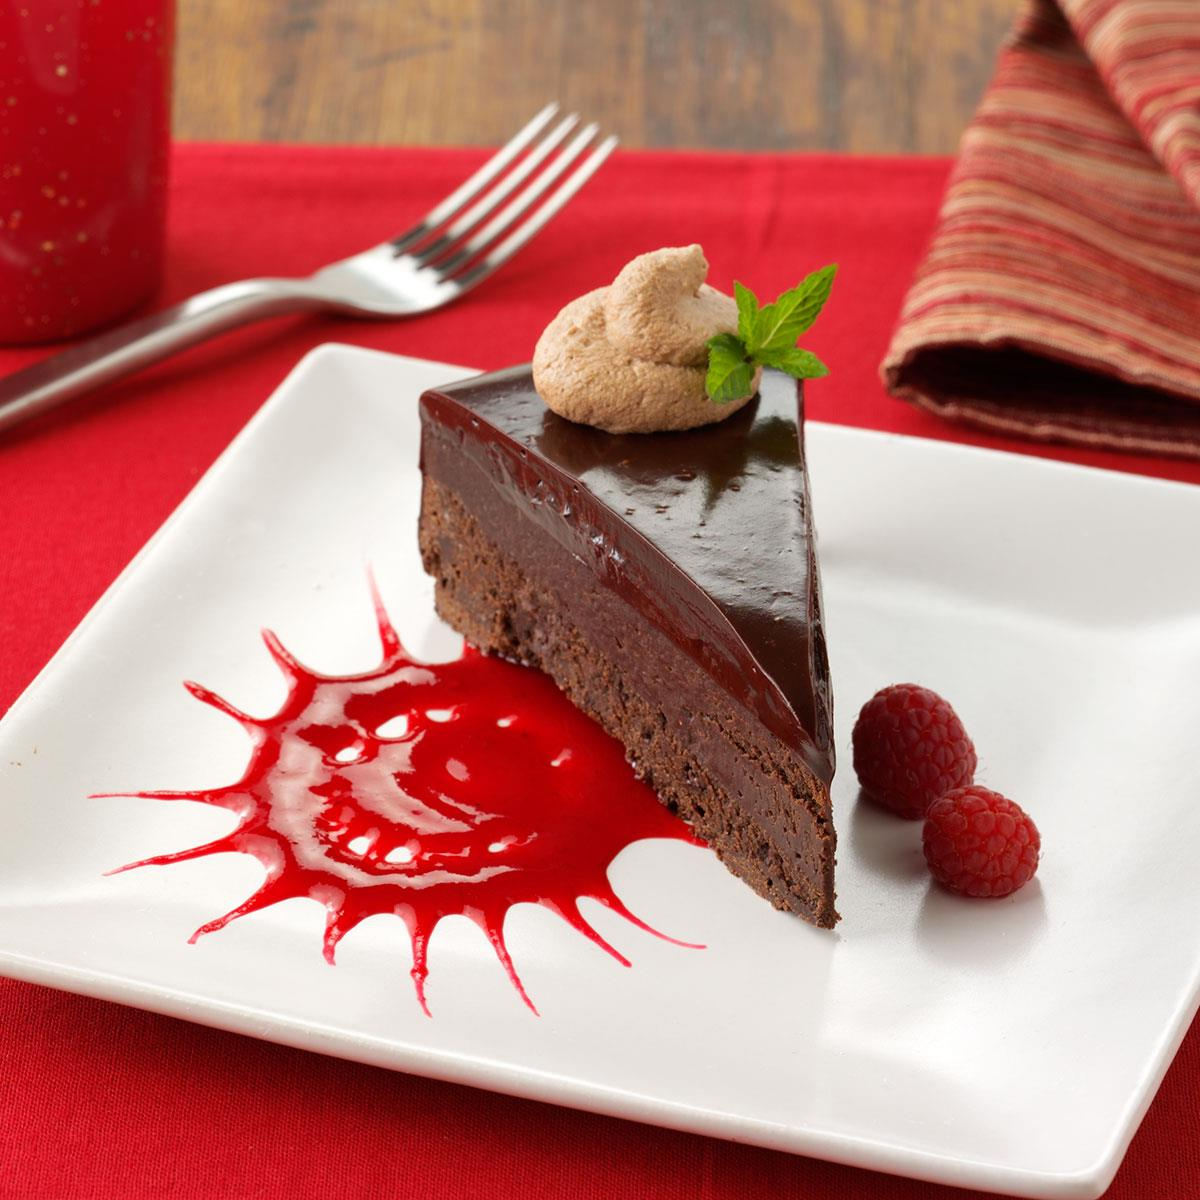 Flourless Chocolate Cake Raspberry Ganache